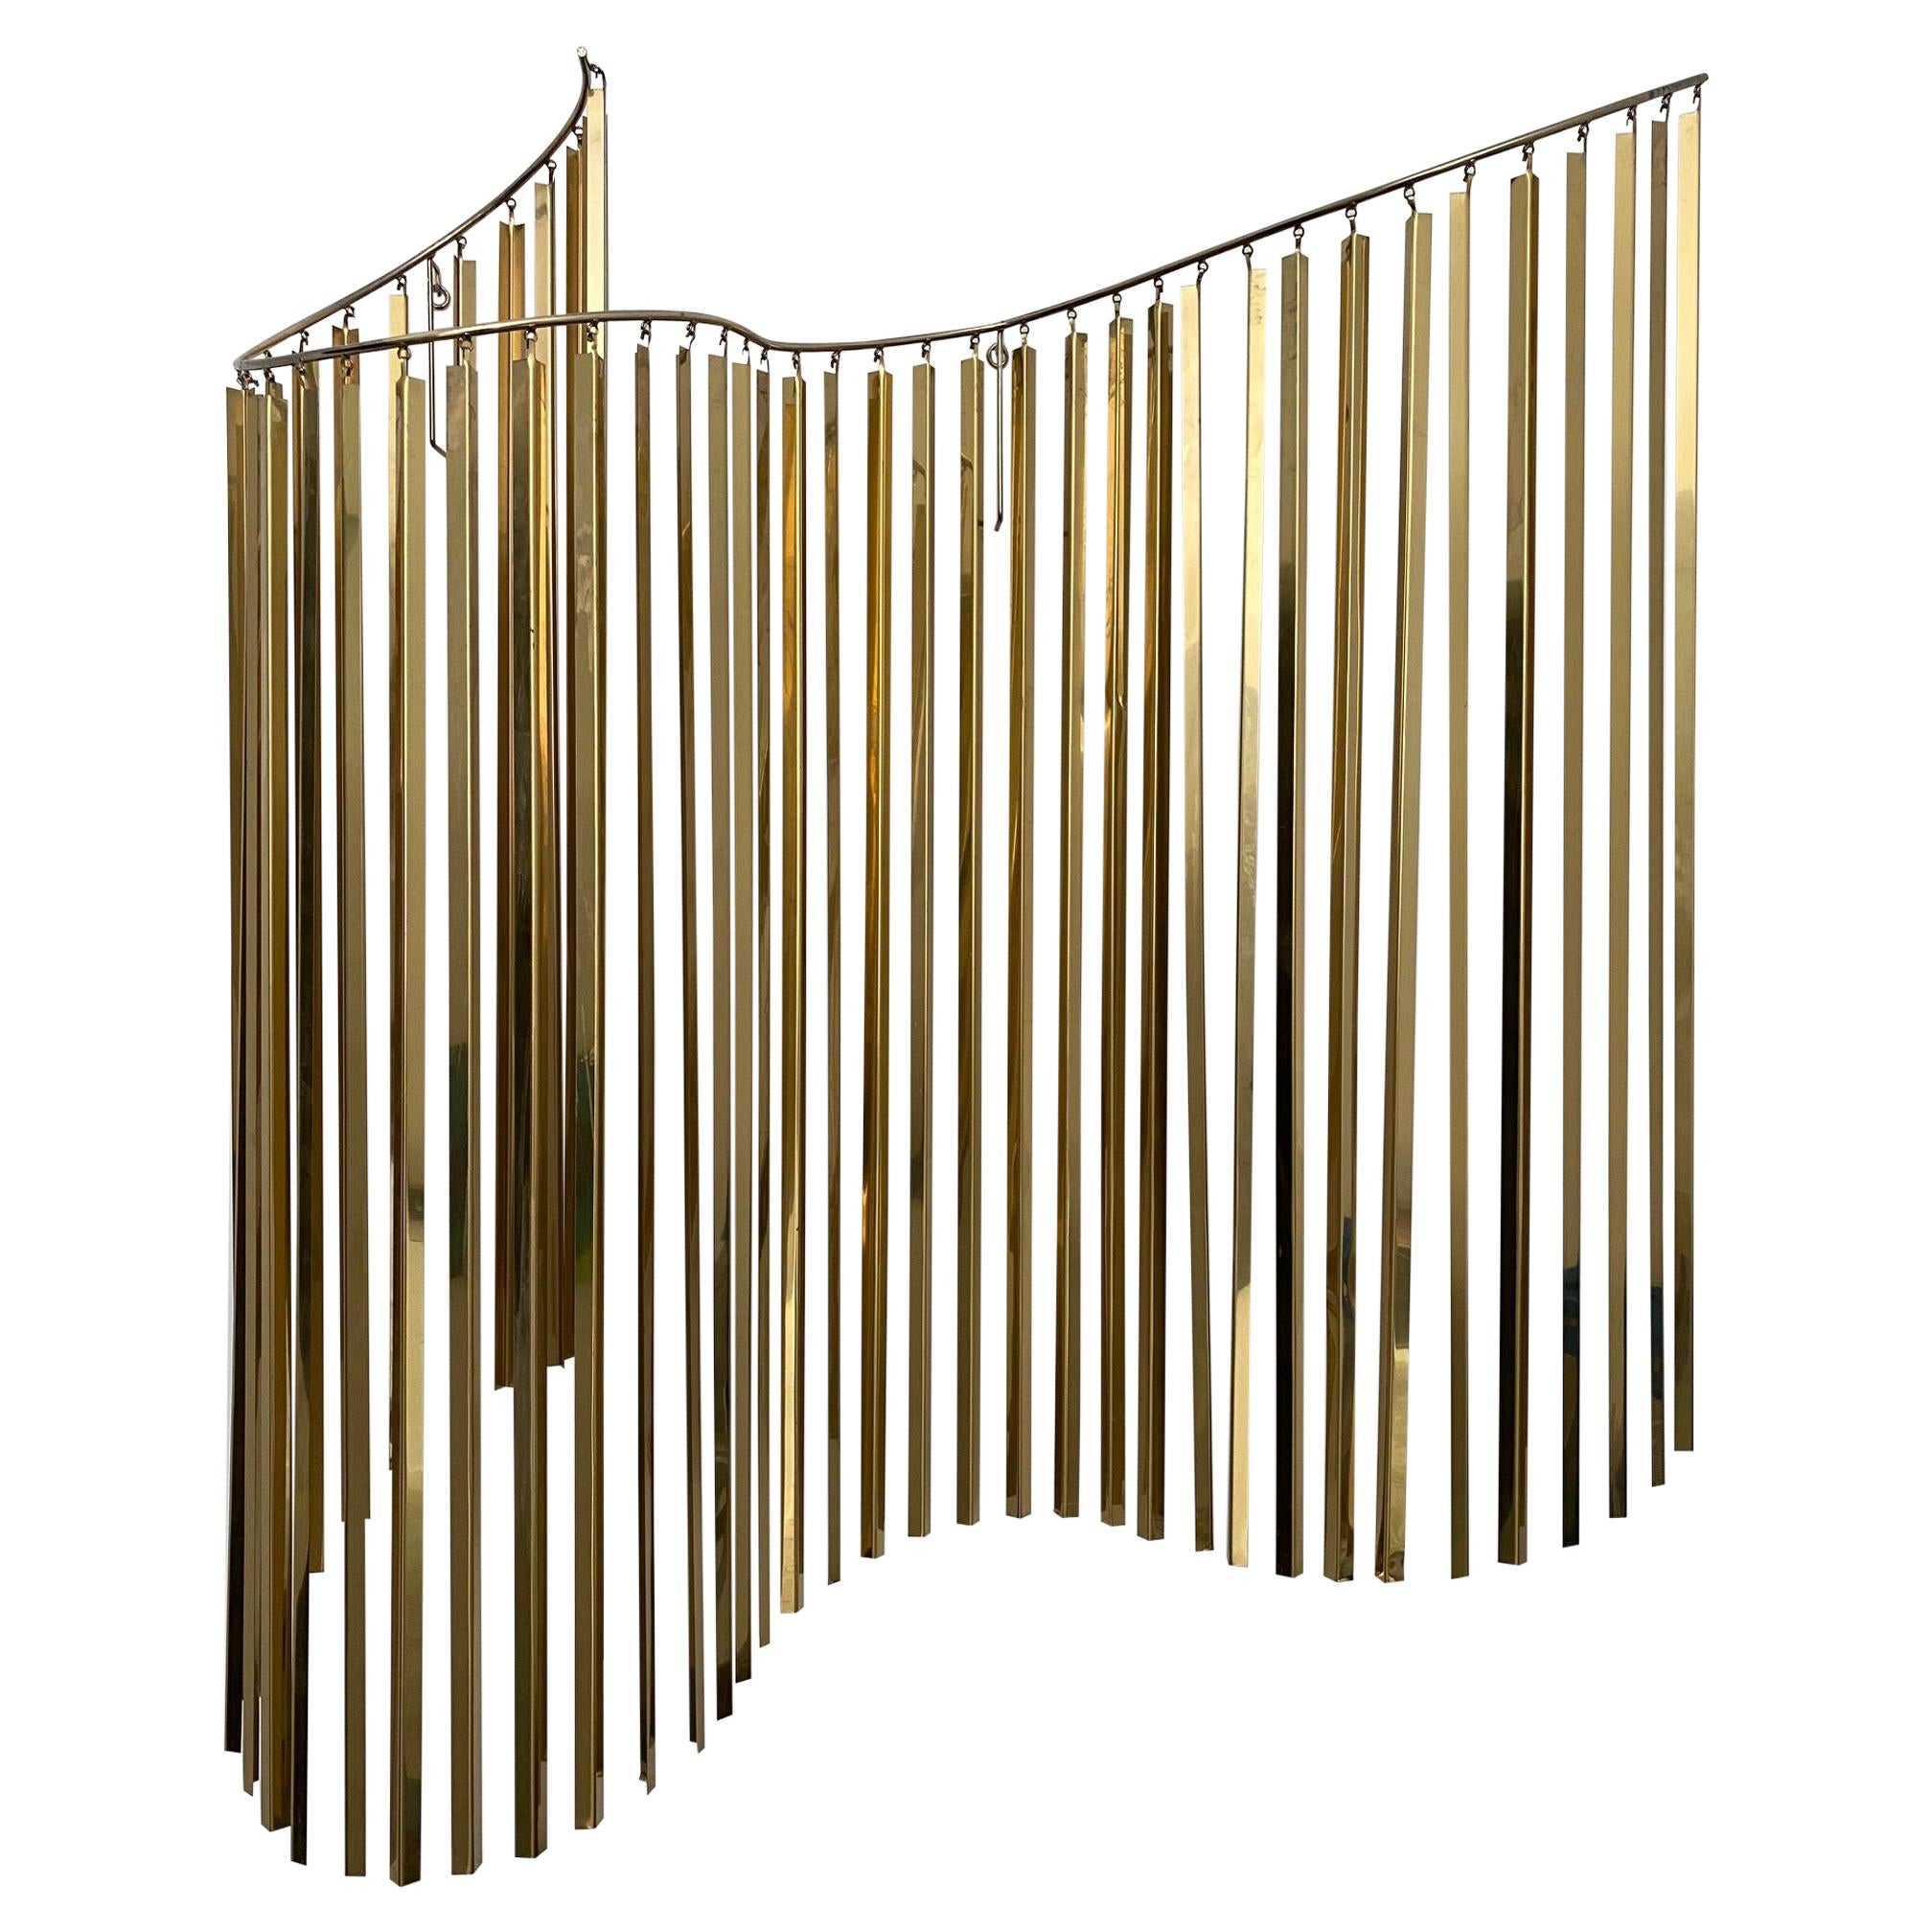 Curtis Jere Kinetic Wave Wall Sculpture